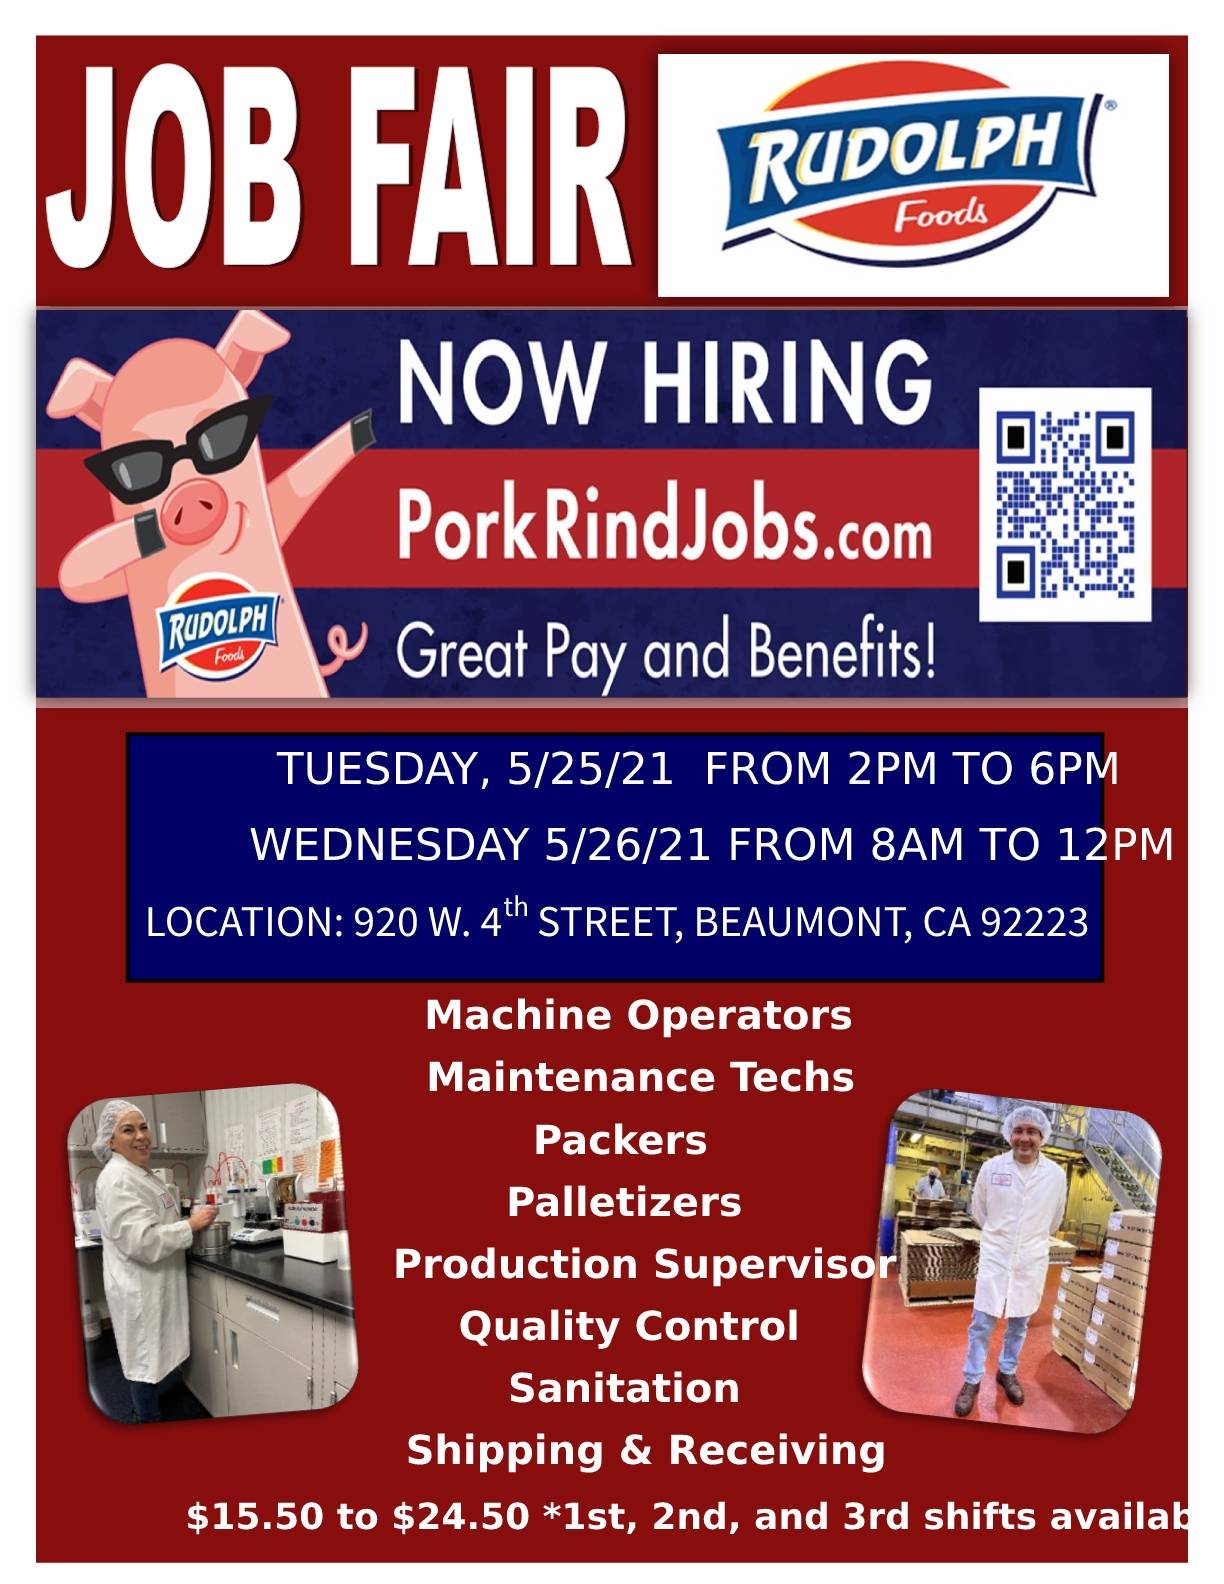 Rudolph Foods Onsite Job Fair on Tuesday, 5/25 and Wednesday, 5/26